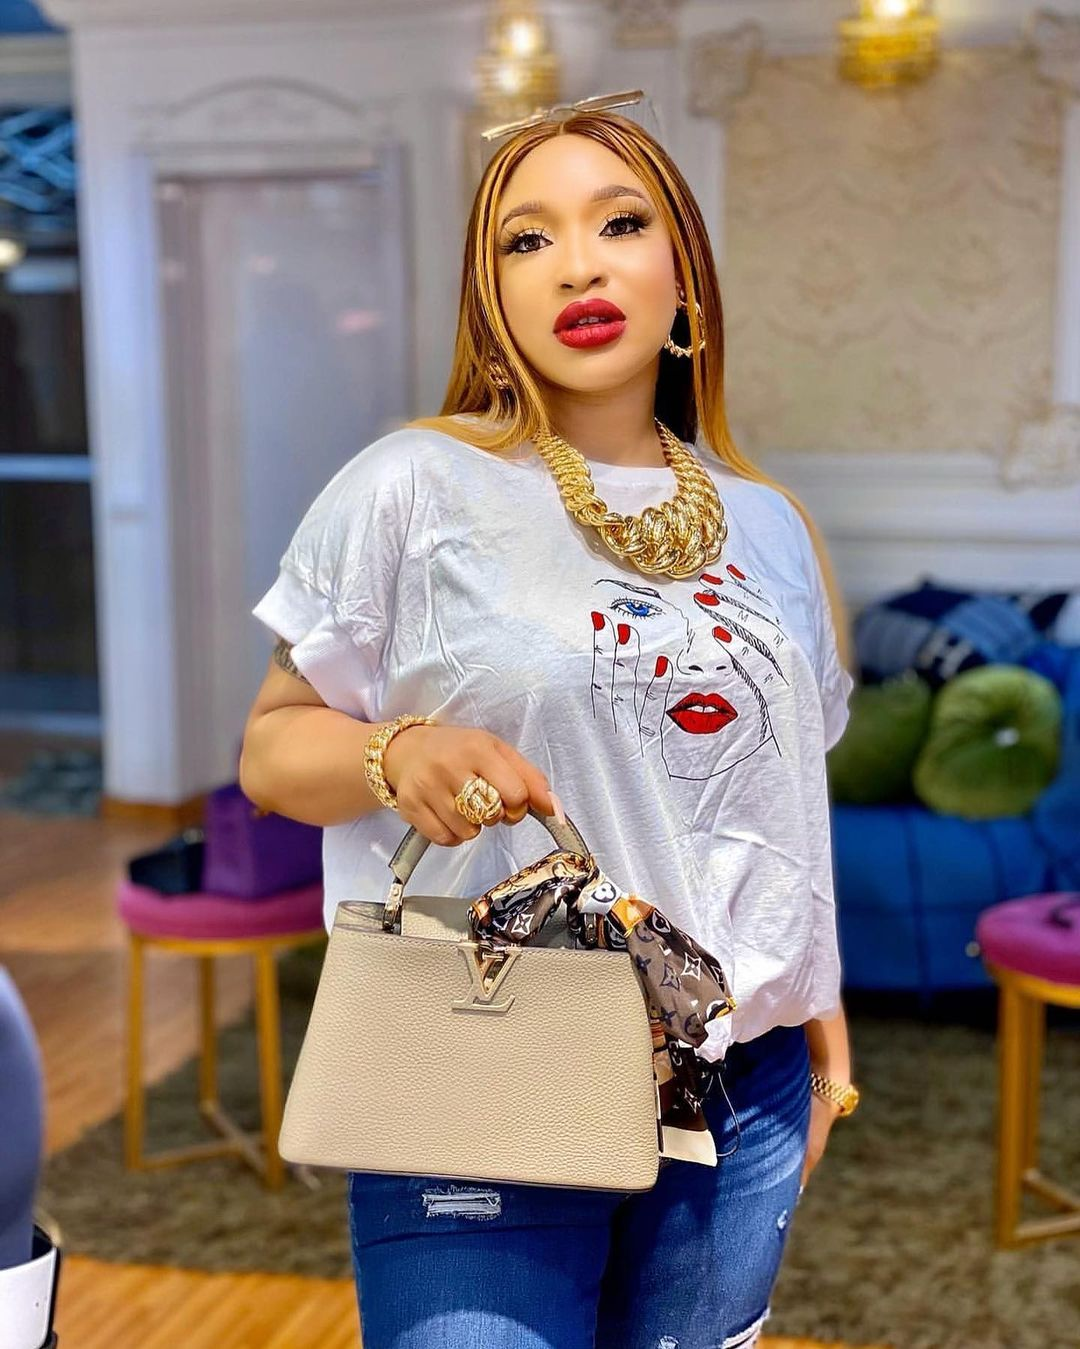 Churchill teases Tonto Dikeh as he shares lovely moments with his new lover, Rosy - Photos 2